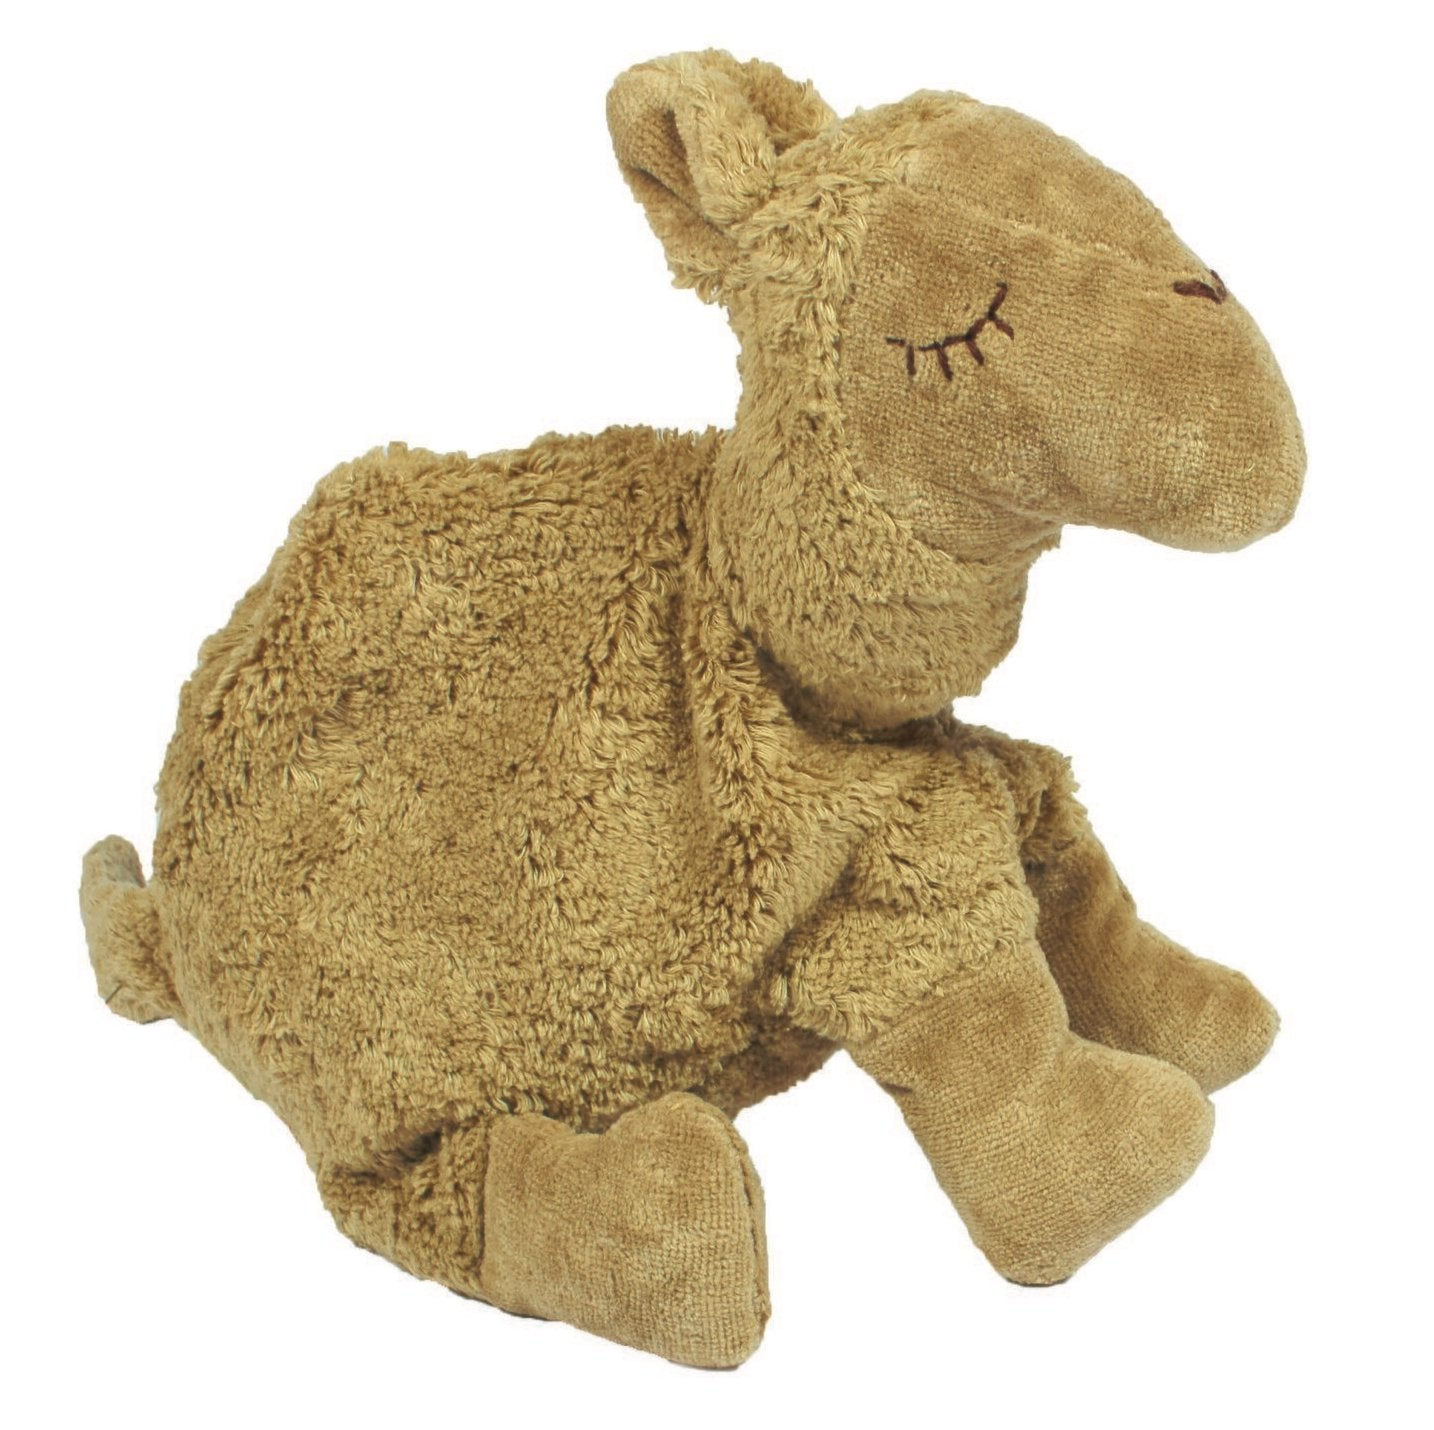 Senger organic cotton cuddly camel toy and pillow with removable heating and cooling pad